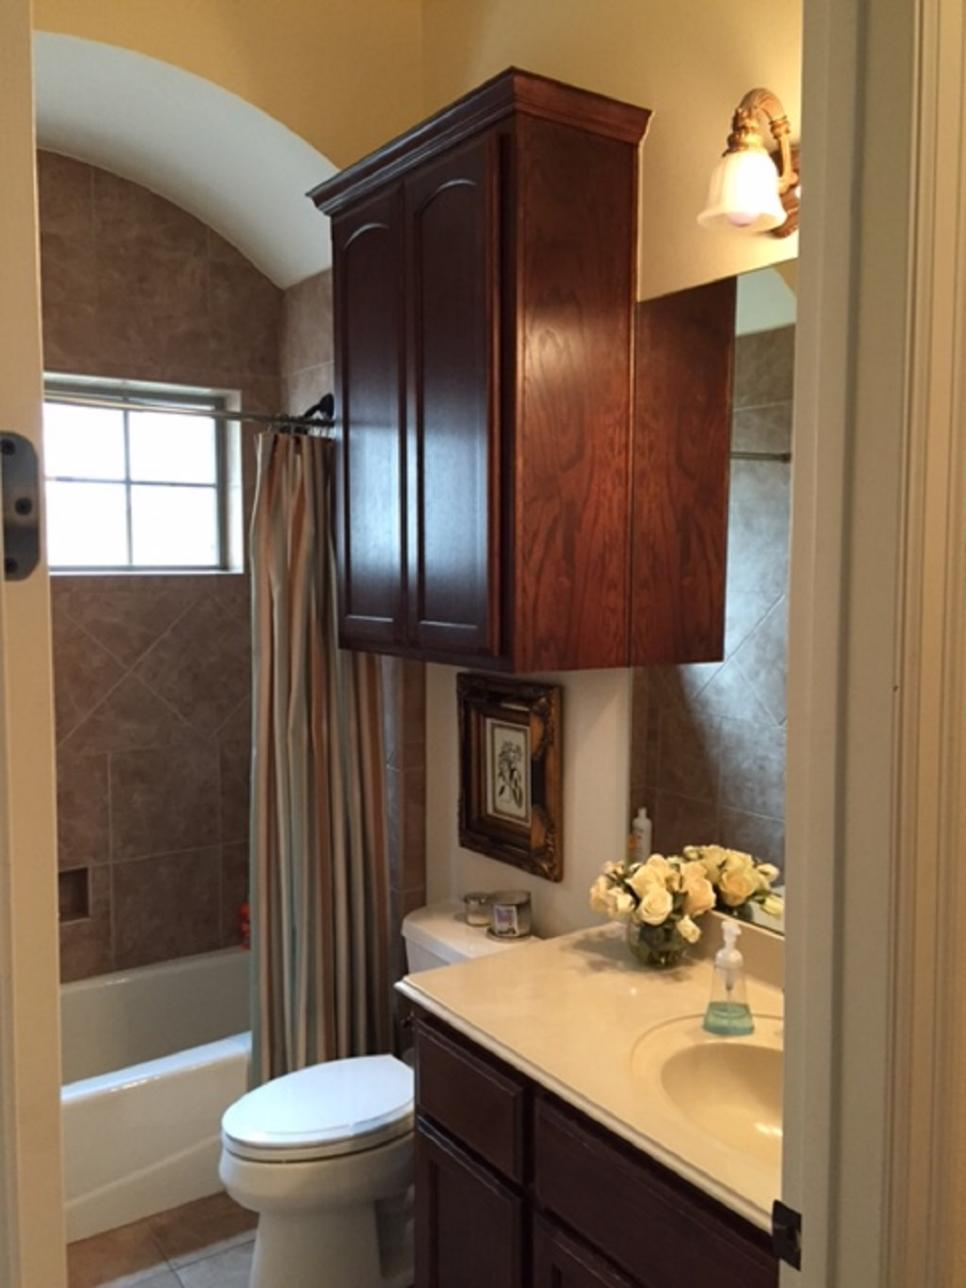 Bathroom Remodeling Ideas Photos before-and-after bathroom remodels on a budget | hgtv